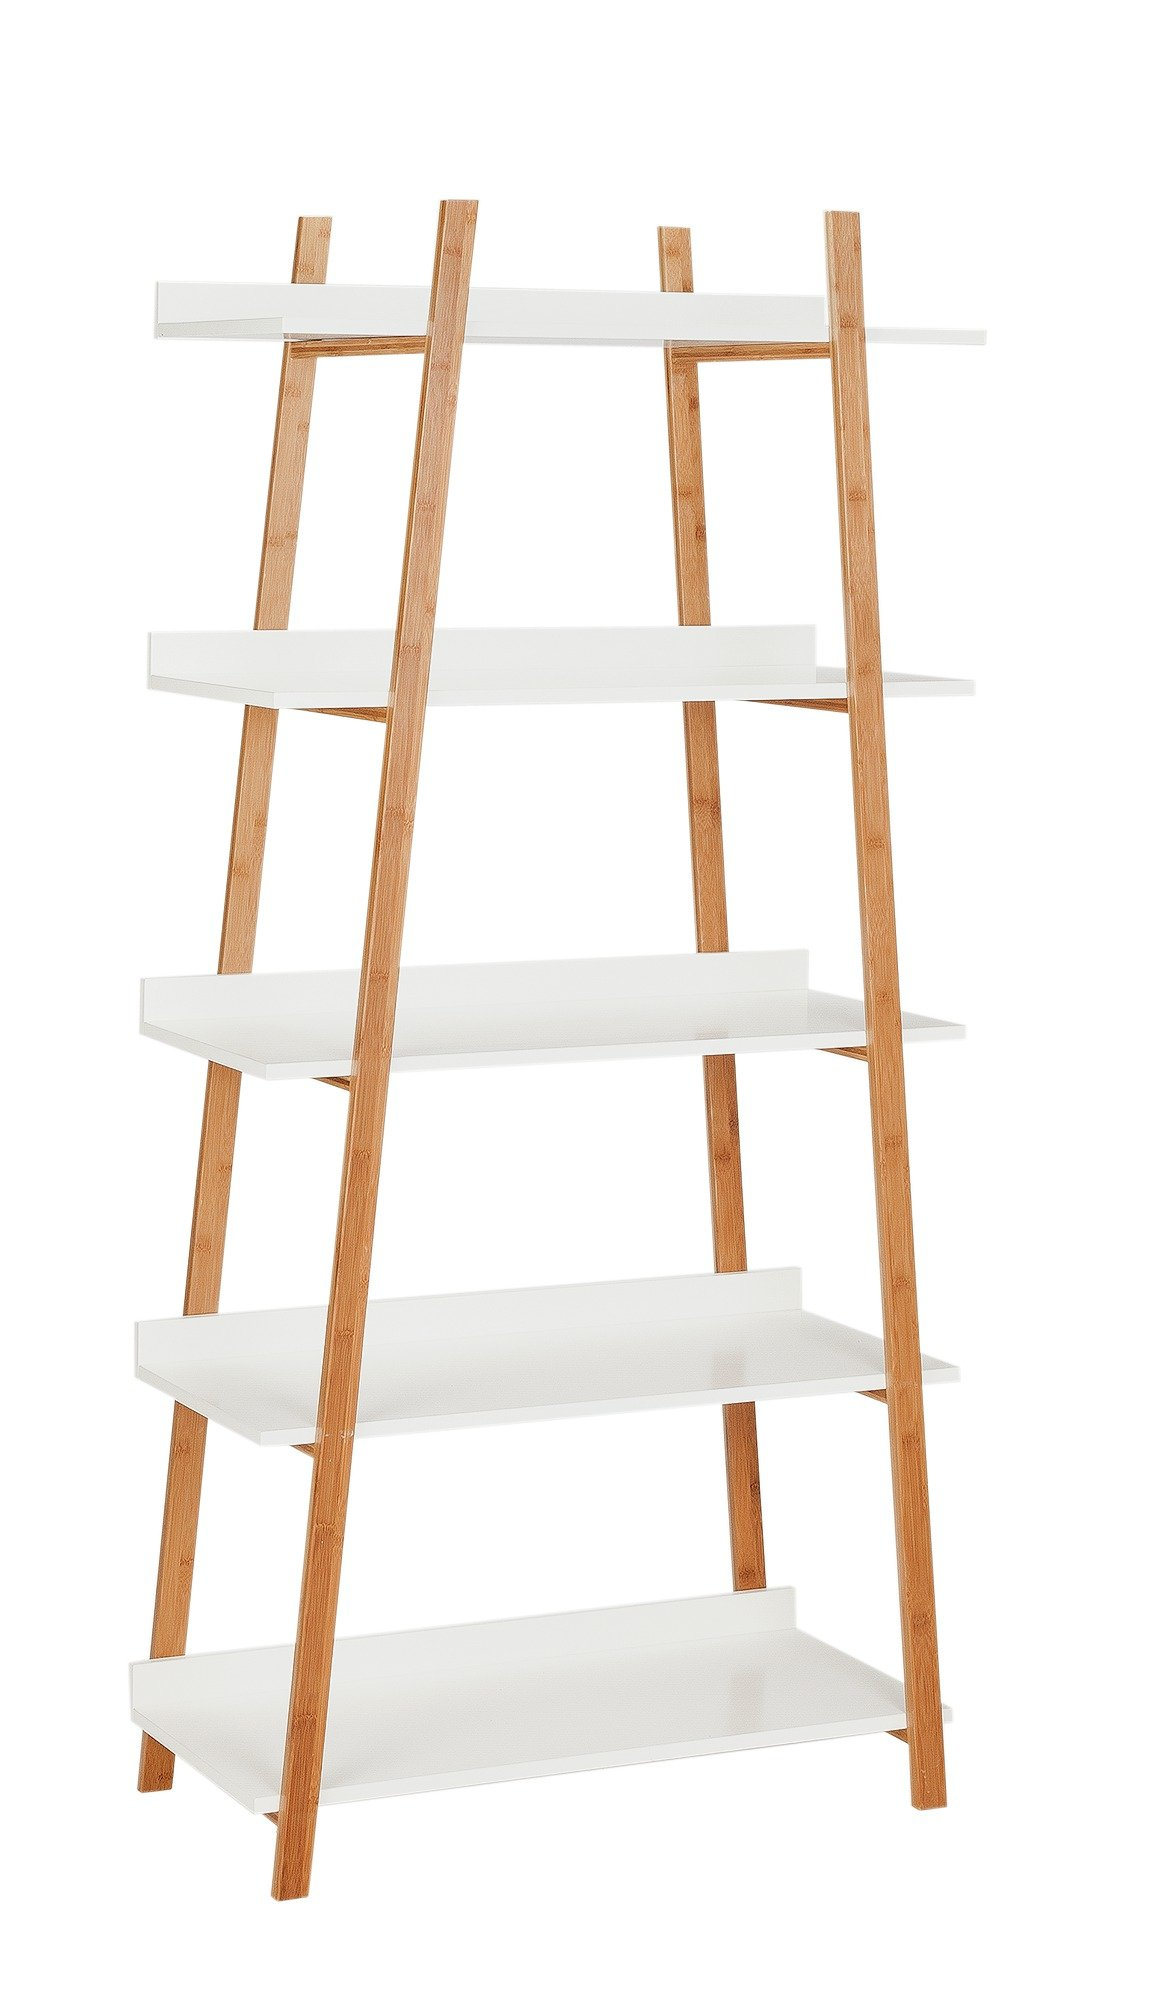 Hygena Skanda 5 Tier Bamboo Shelving Unit - White